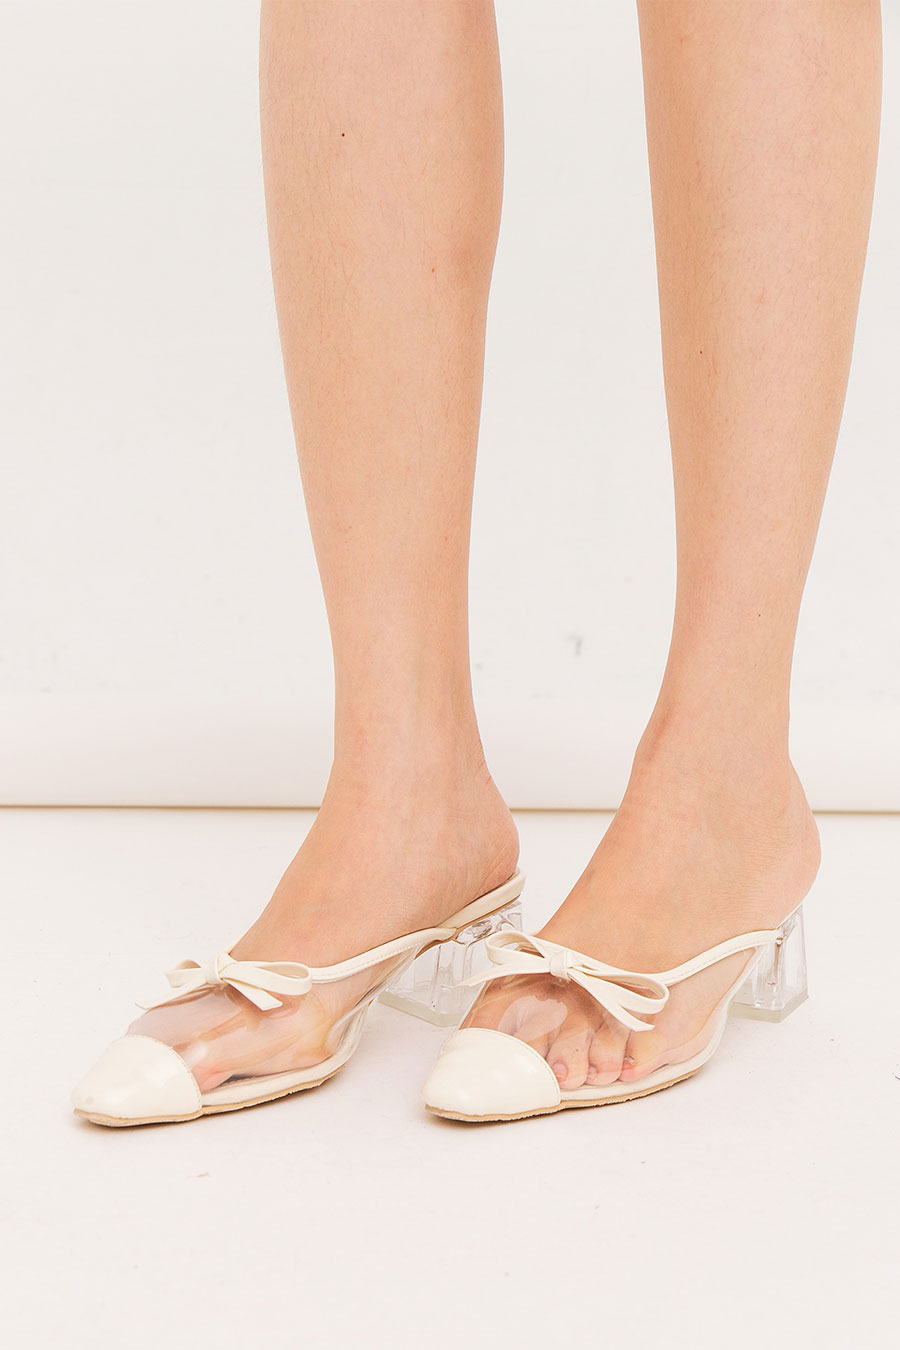 EMMIE SHOES - IVORY